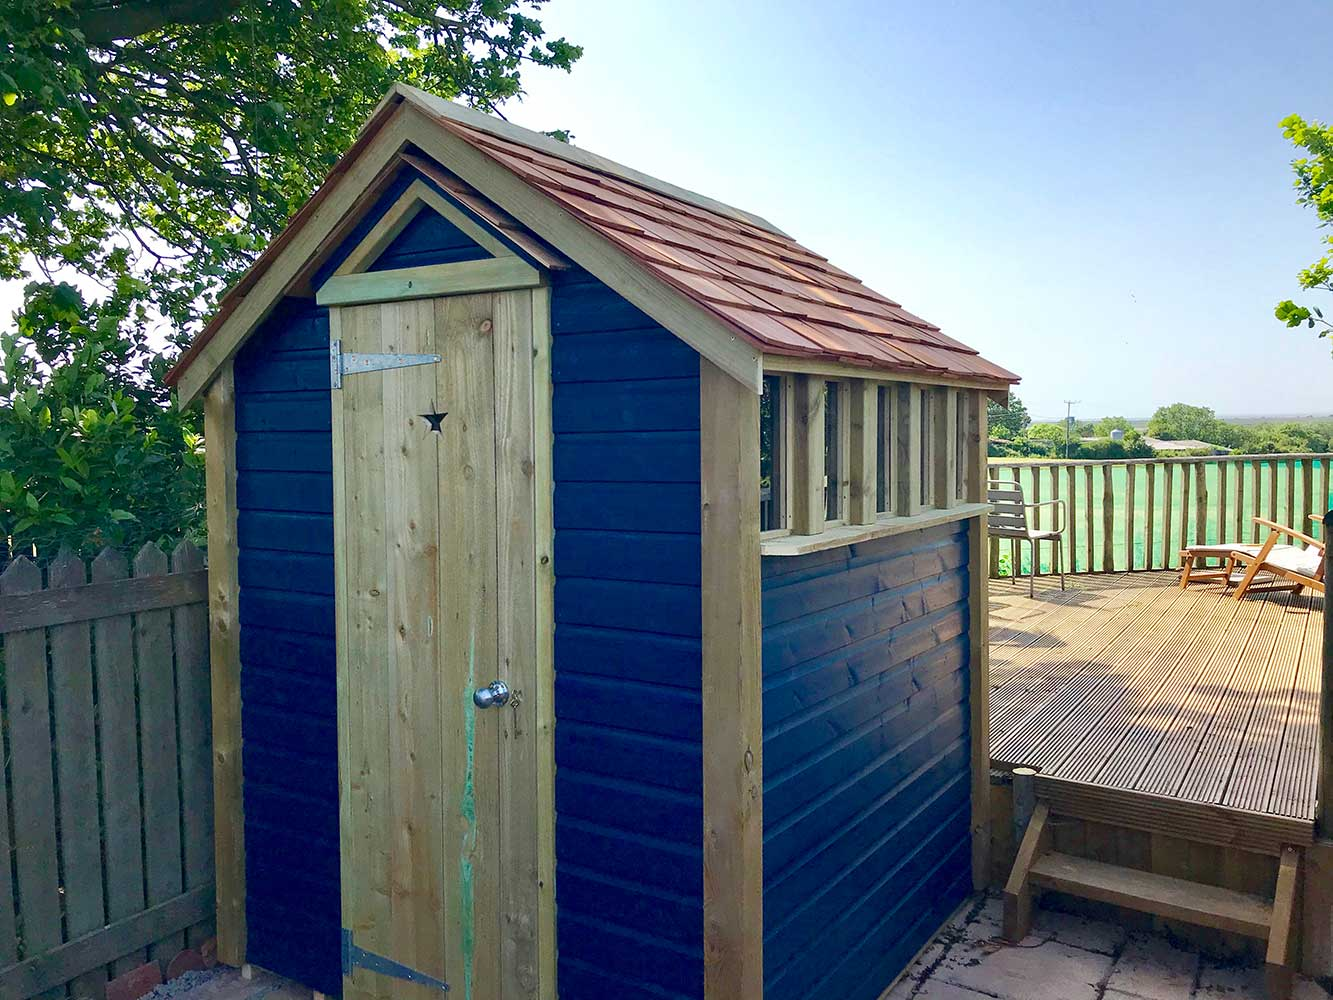 Thorndown-Bishop-Blue-Wood-Paint-on-Wood-and-Space-shed-in-garden